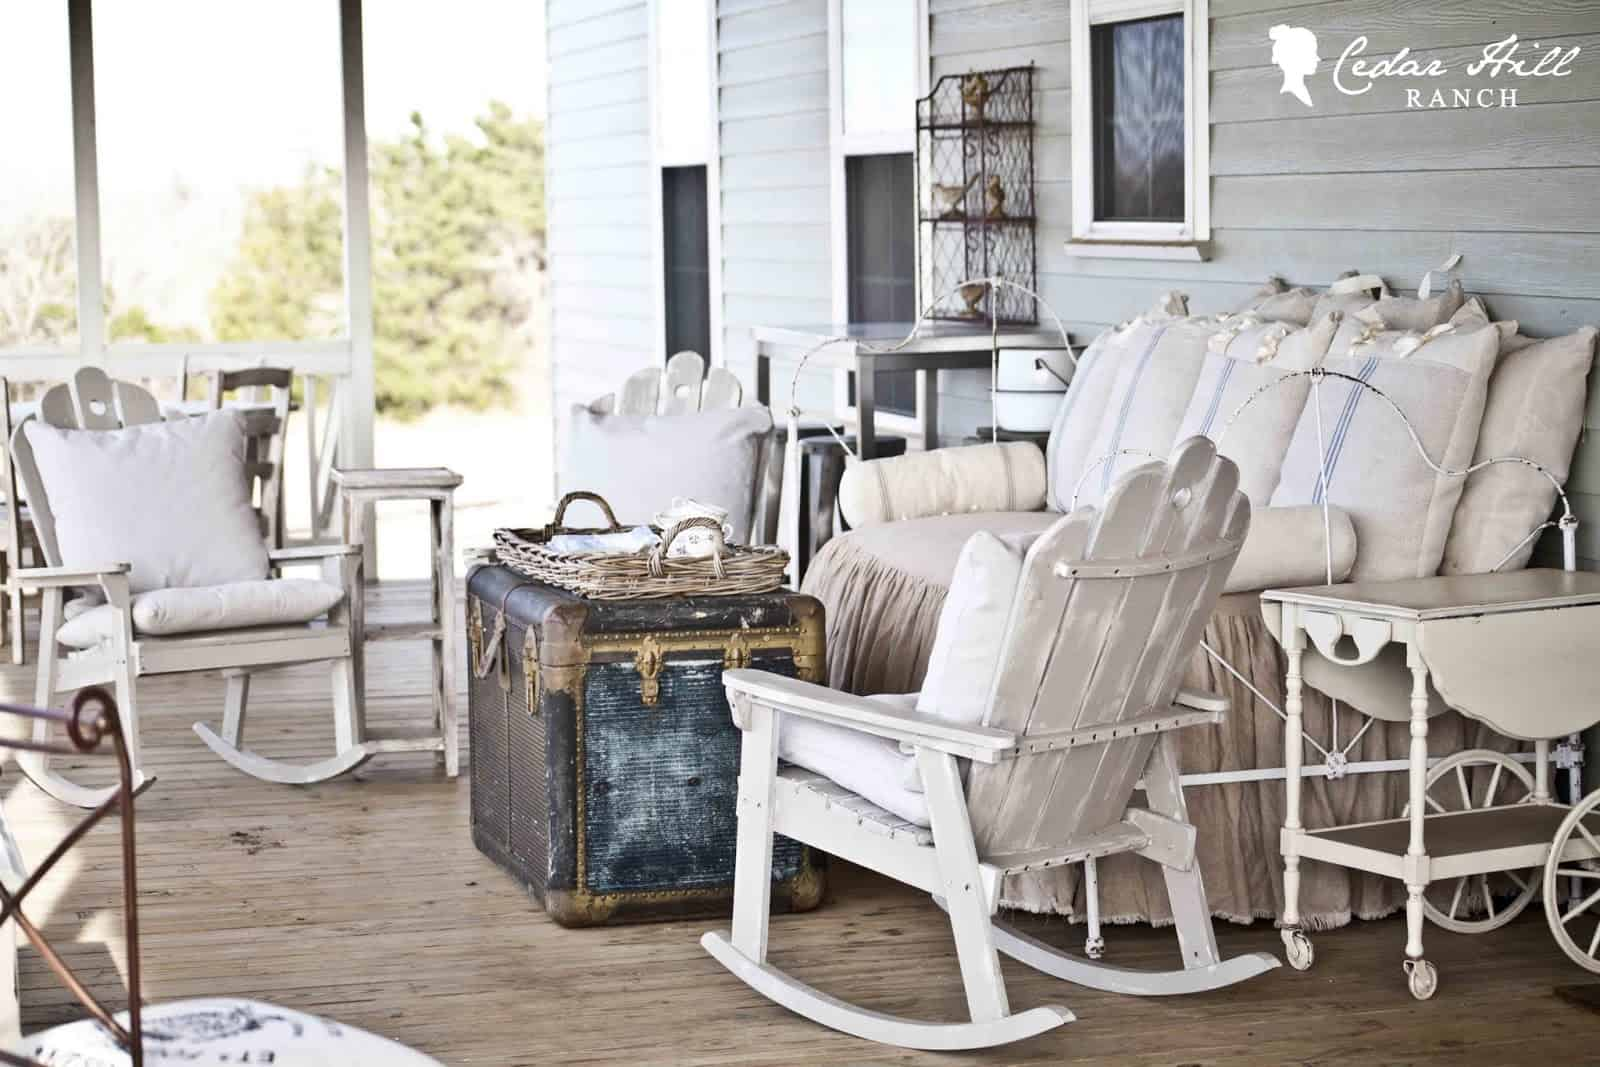 back porch from Cedar Hill Ranch blog